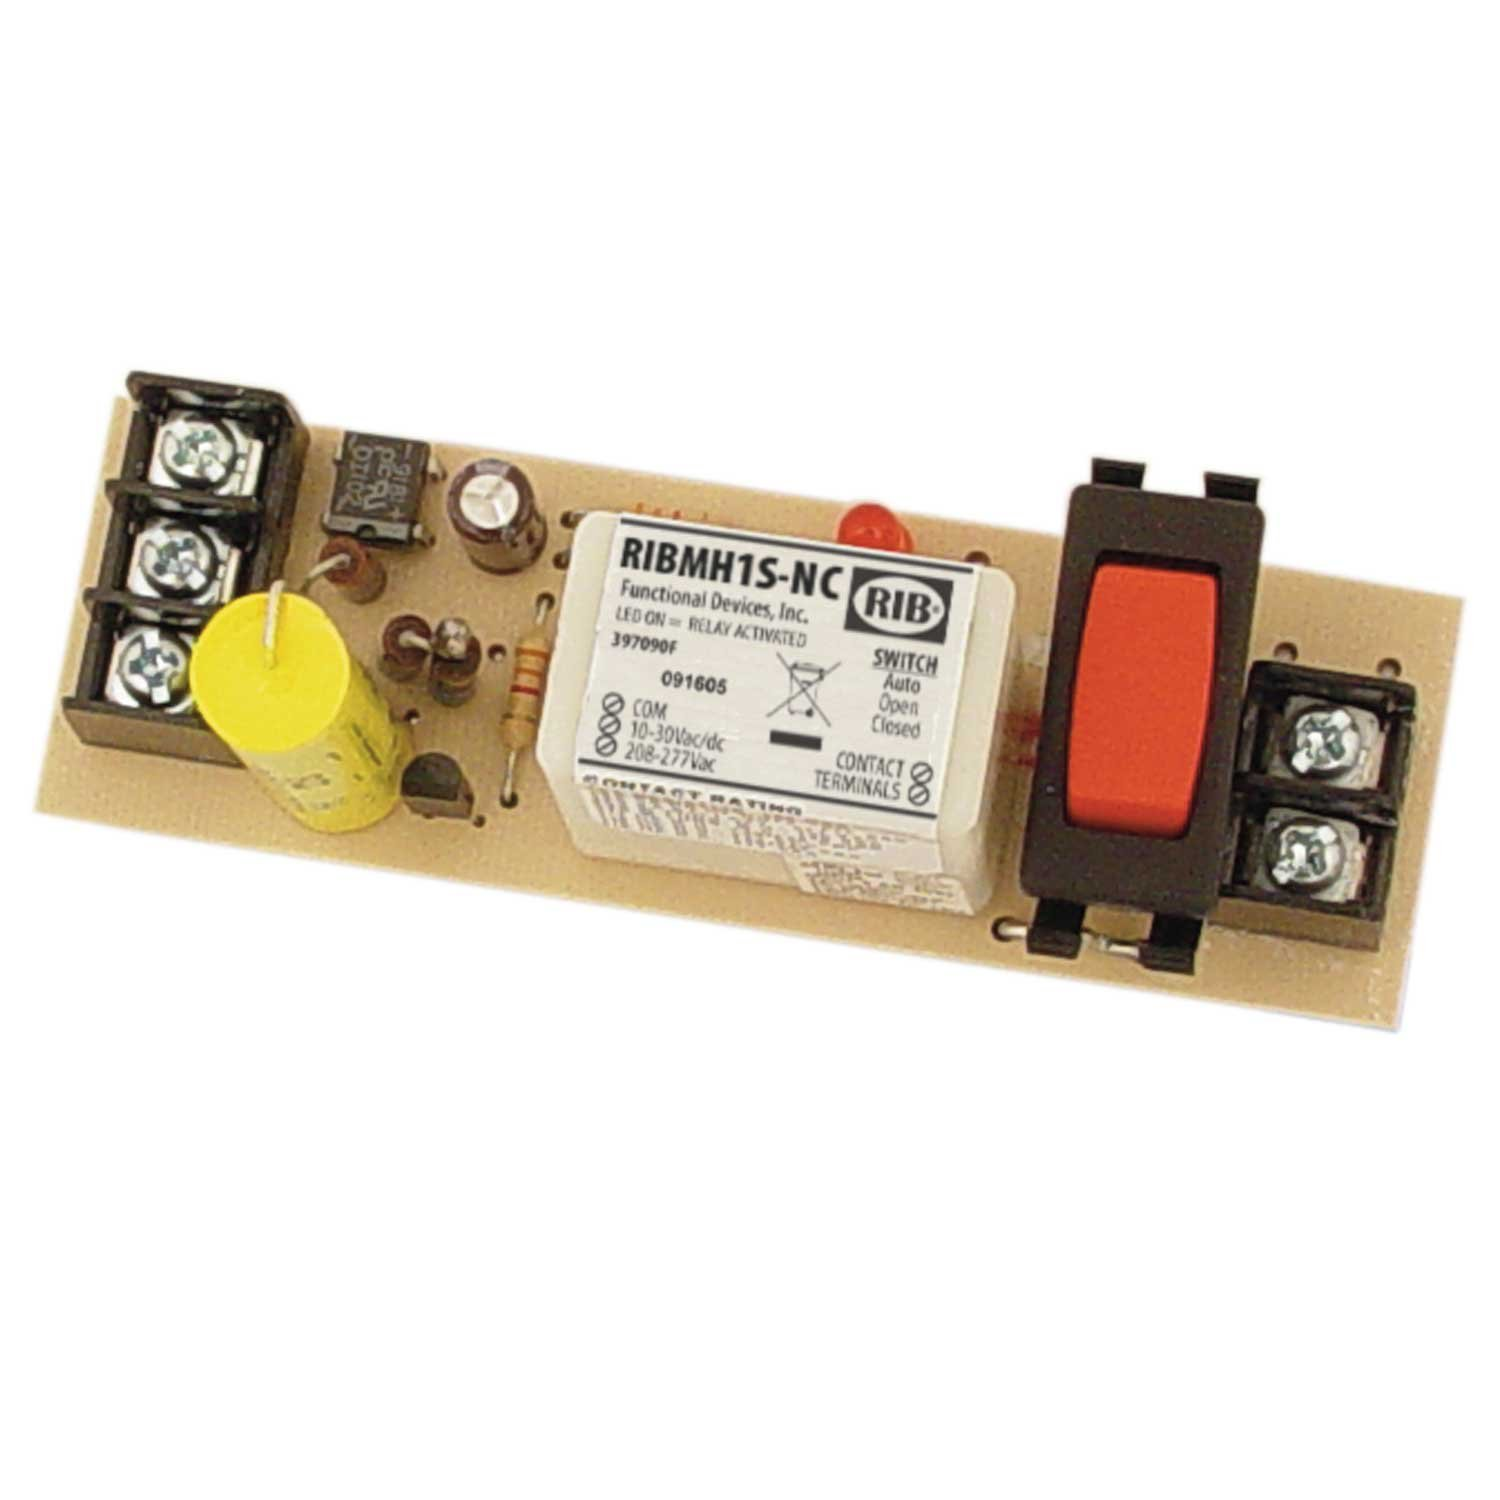 Panel Relay 4.000x1.275in 15Amp SPST-NC + Override 10-30Vac/dc/208-277Vac